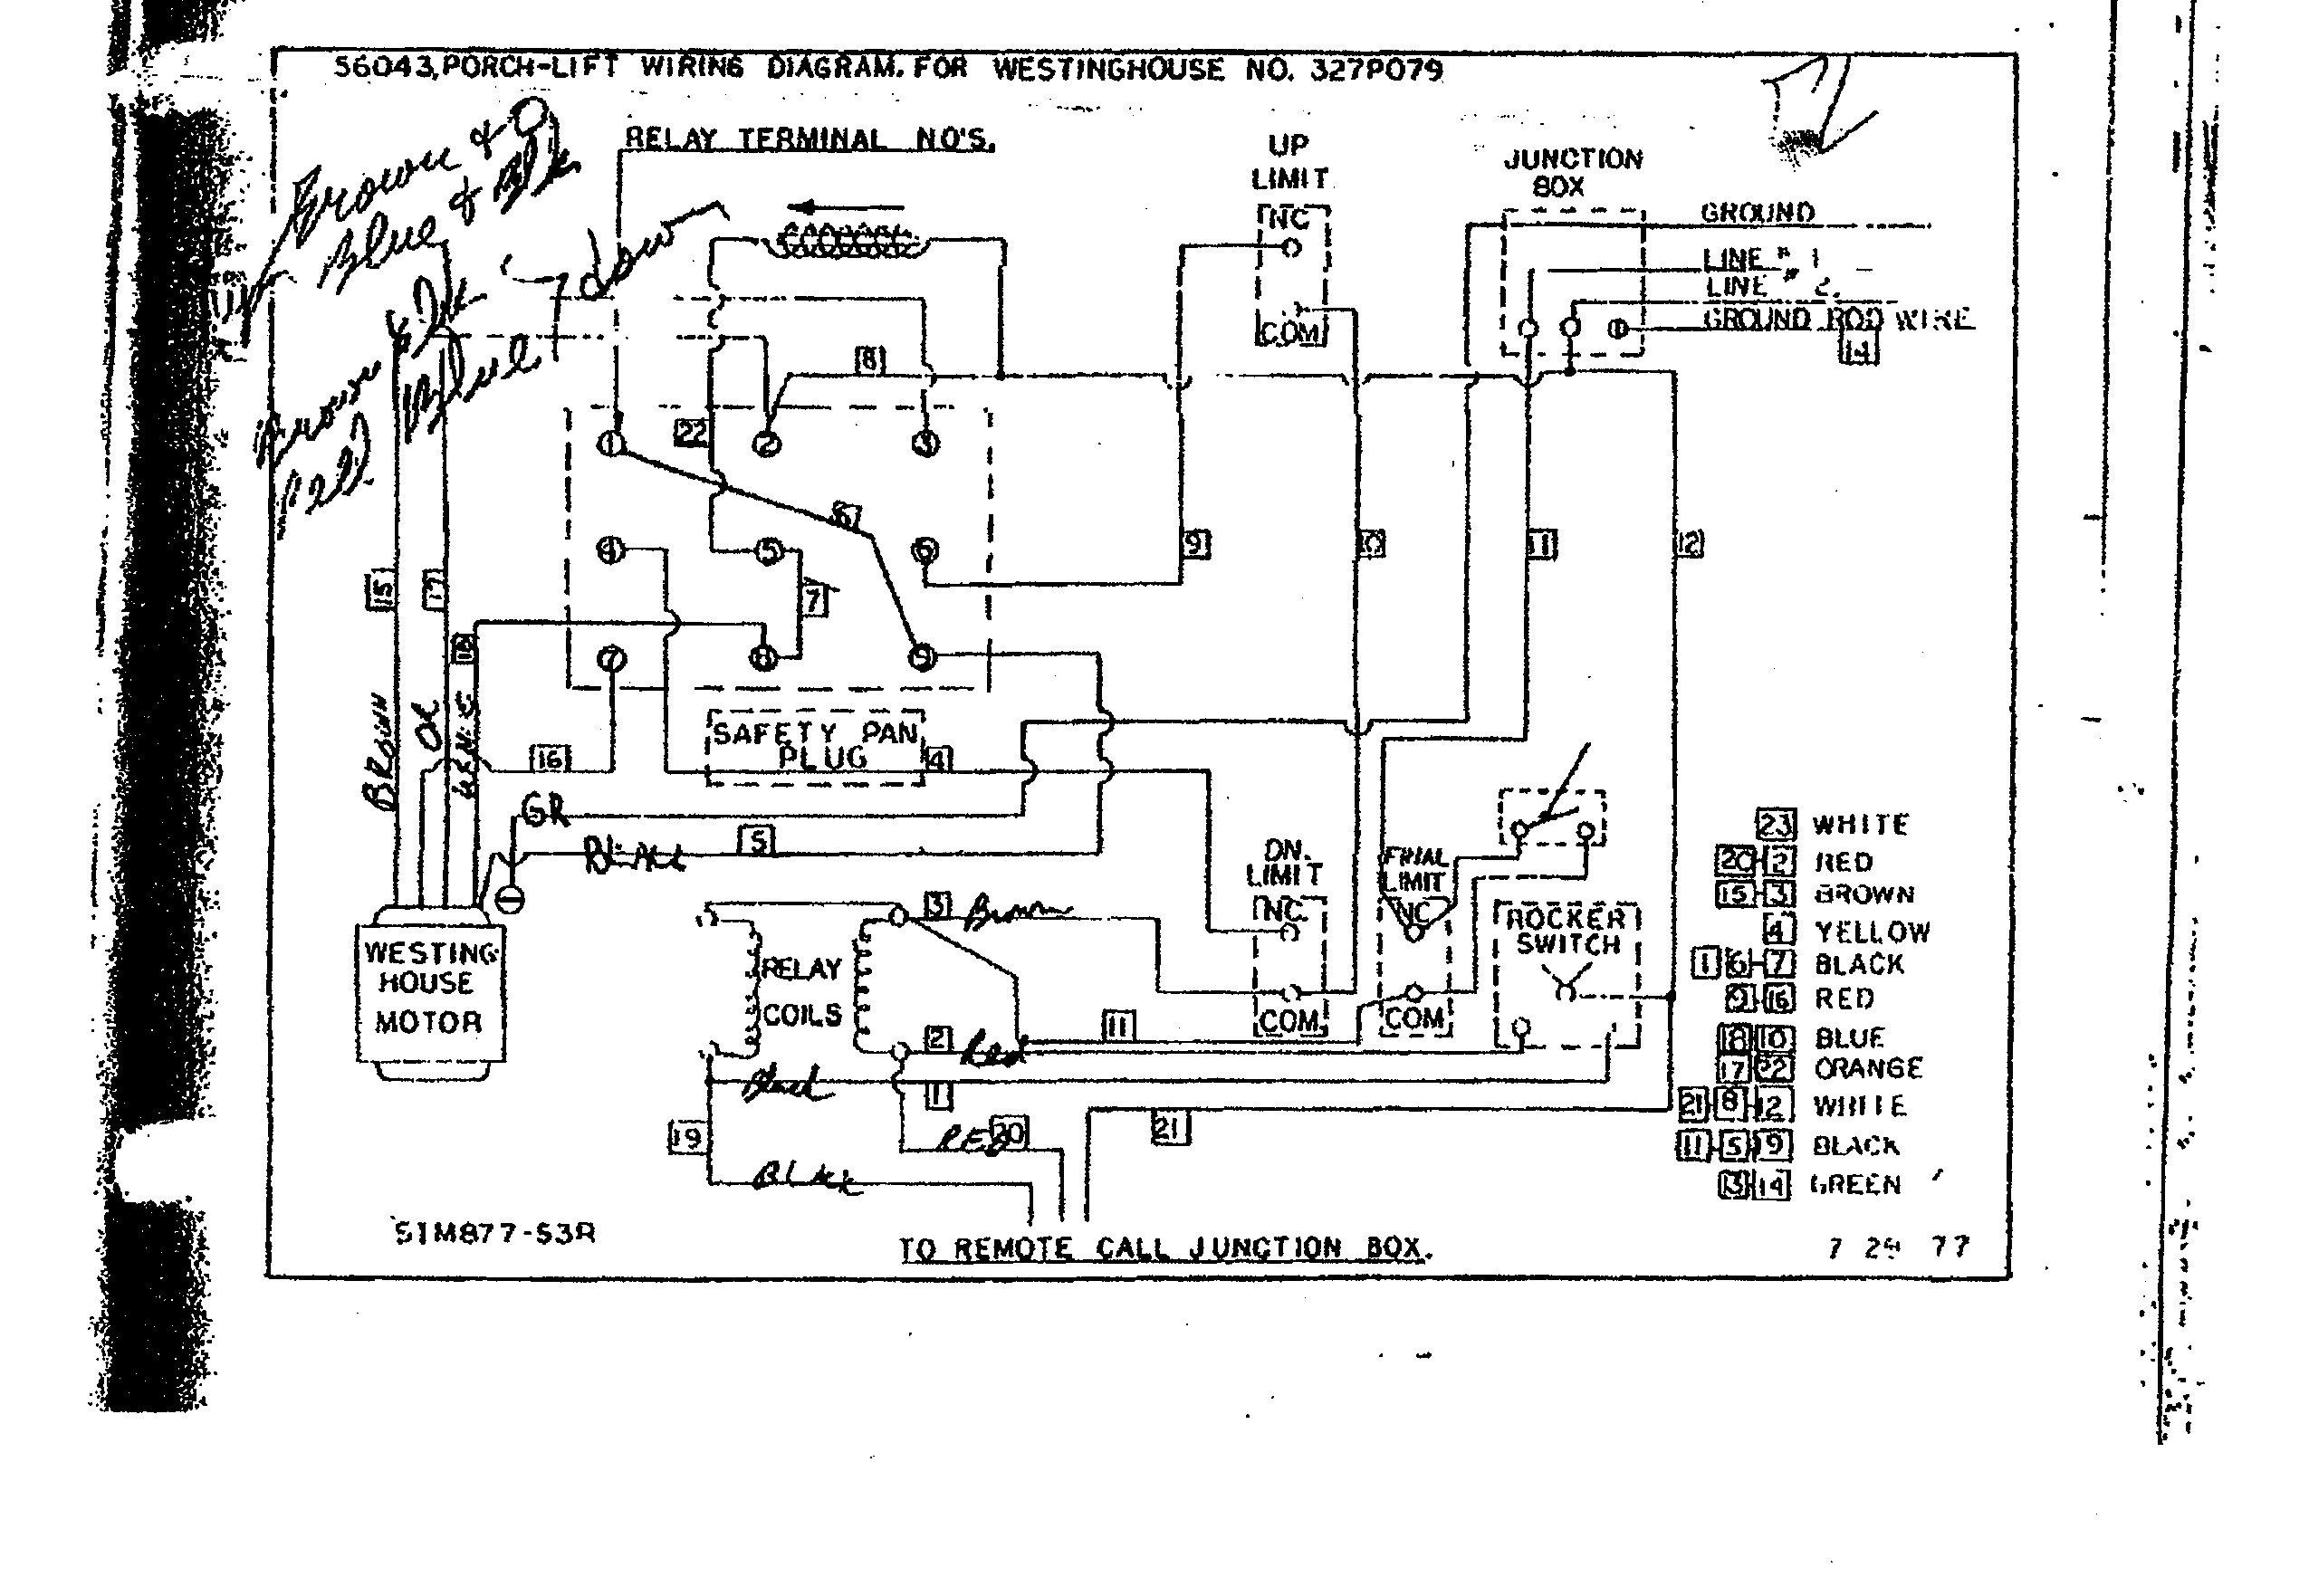 2011 01 04_160748_thyssenkrupp who where can i get help with westinghouse motor wiring? westinghouse ac motor wiring diagram at bayanpartner.co